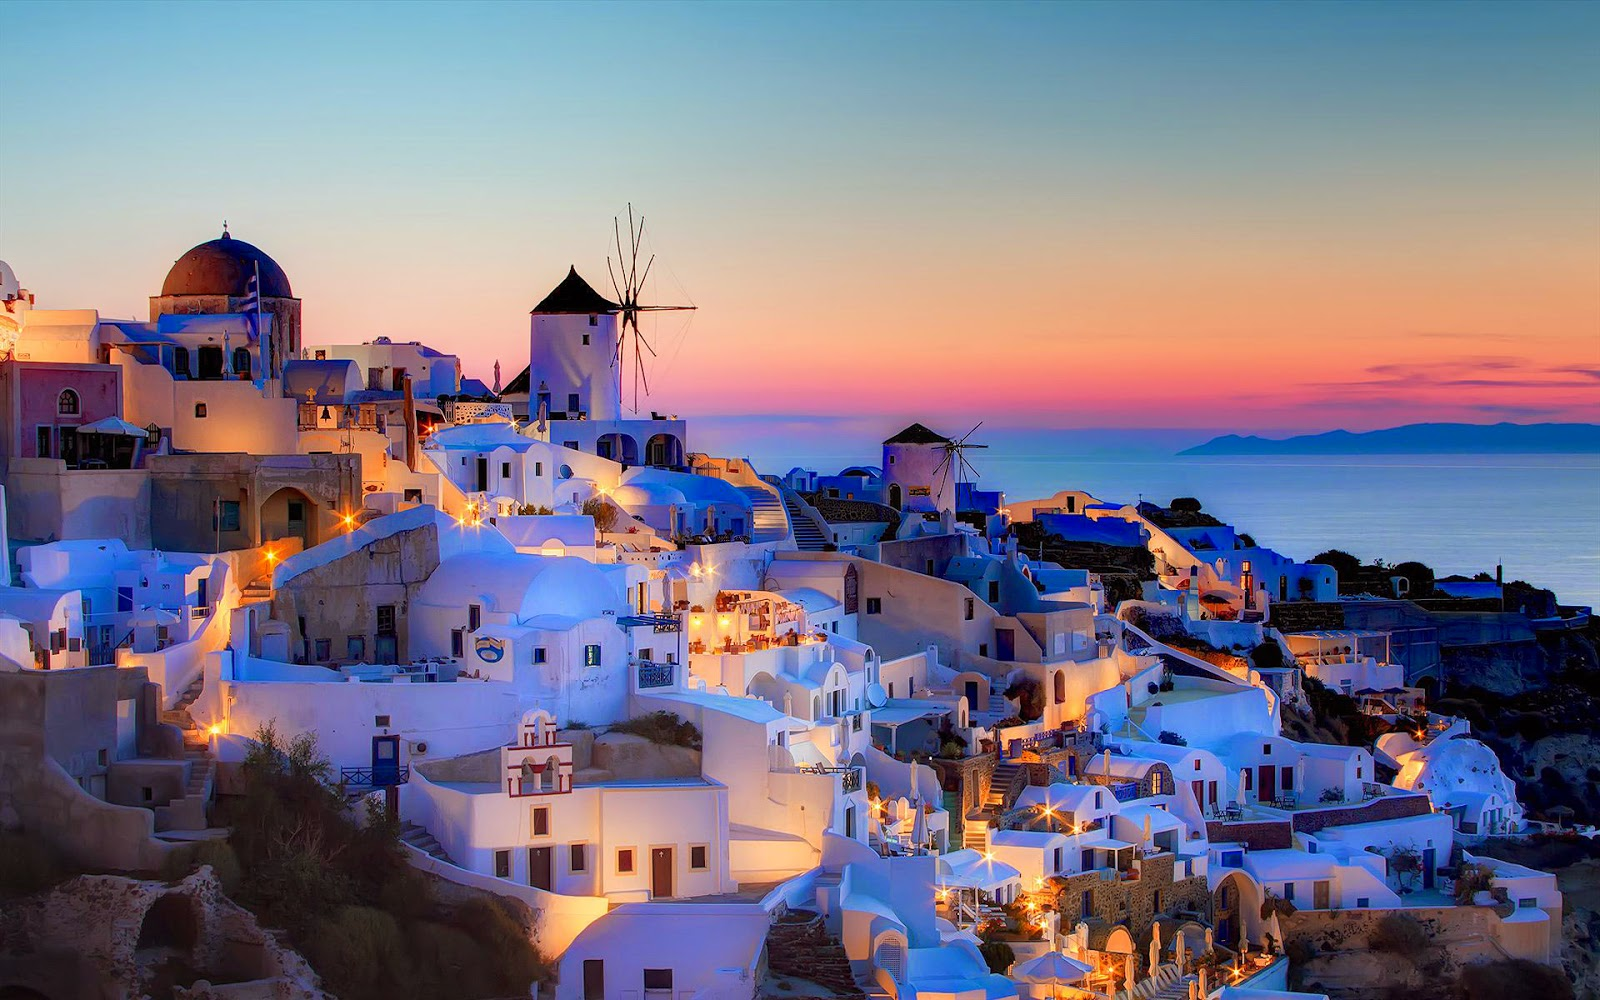 Santorini desktop hd high definition wallpapers amazing world santorini hd wallpapers santorini desktop hd free wallpapers santorini desktop hd images santorini desktop high defination wallpapers most popular thecheapjerseys Gallery